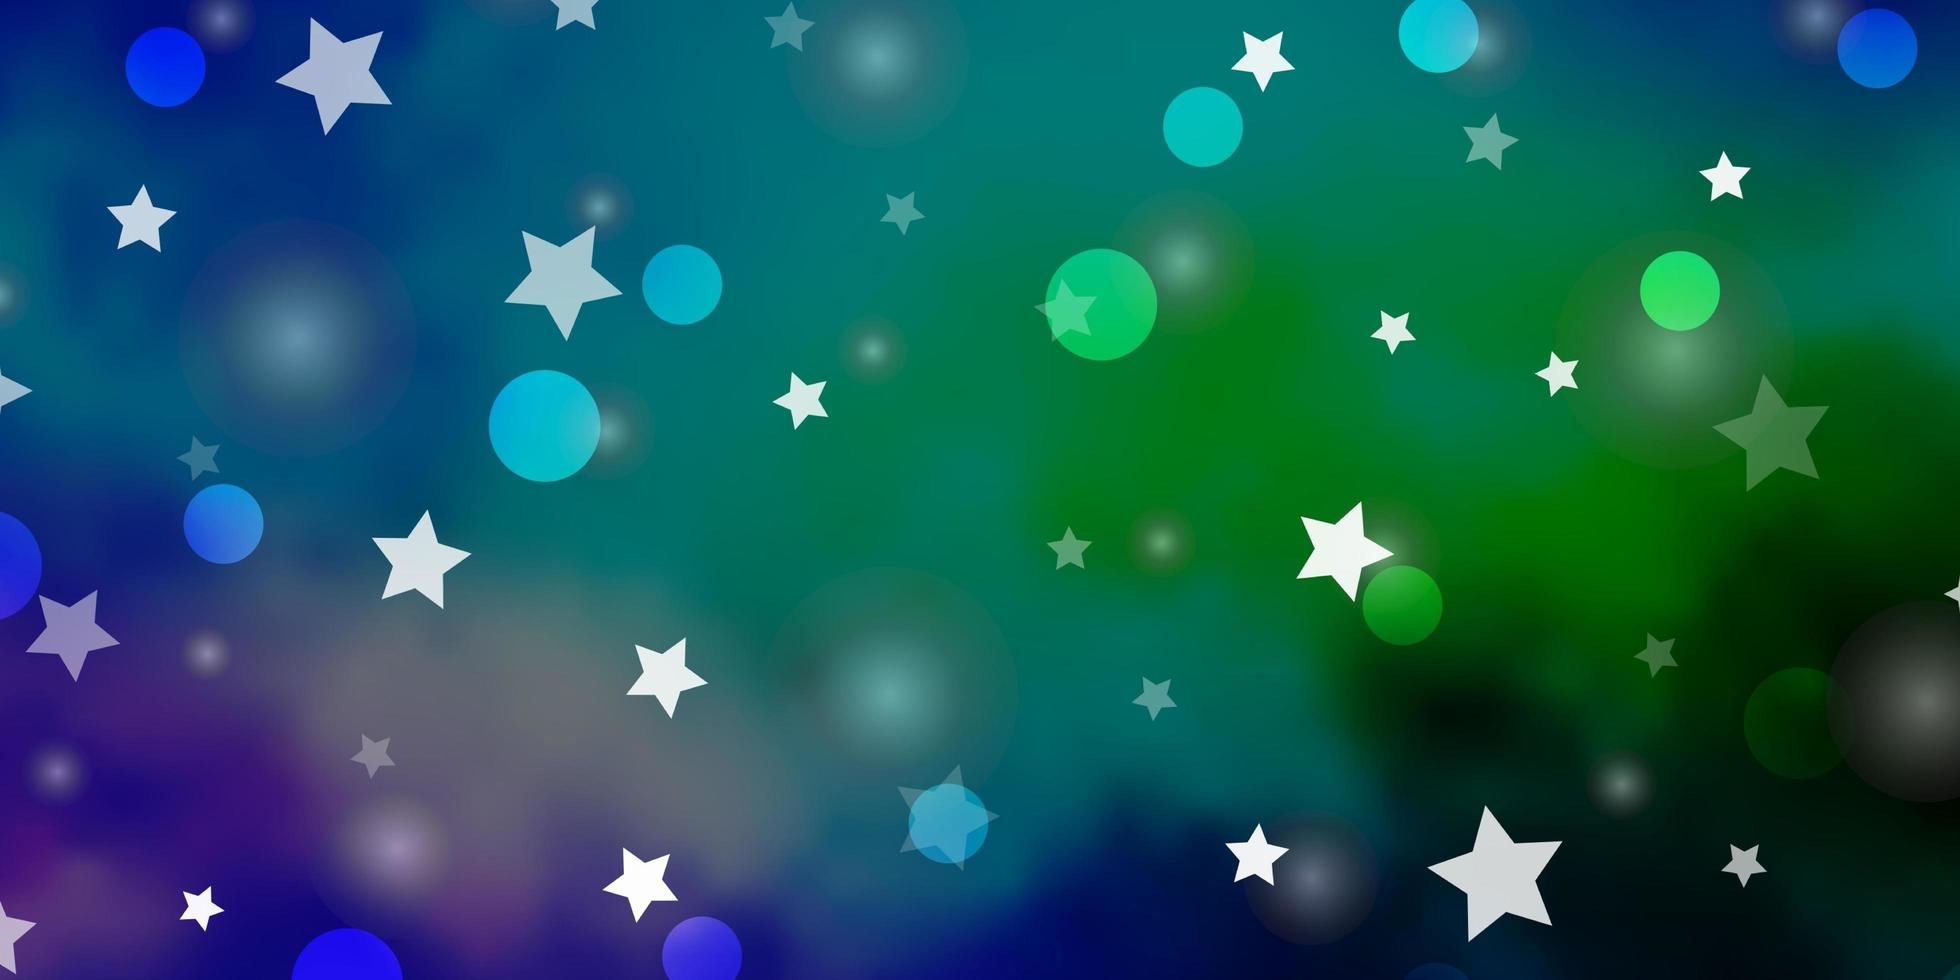 Blue and green pattern with circles and stars. vector